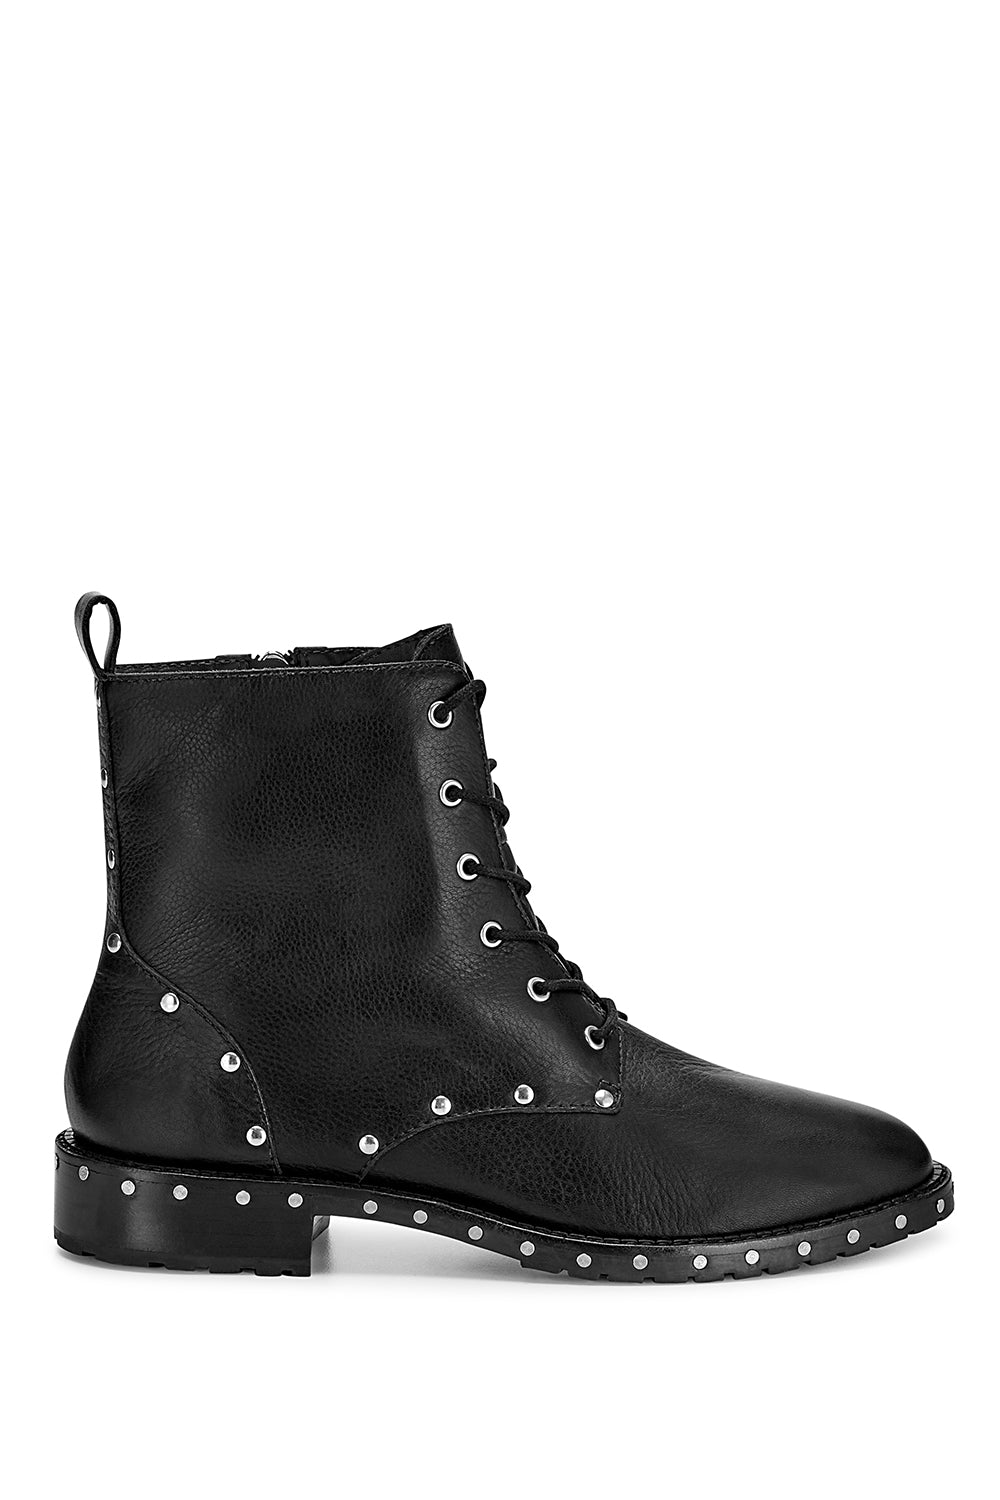 Rebecca Minkoff Gerry Studded Lace-Up Boot uiiLEjL